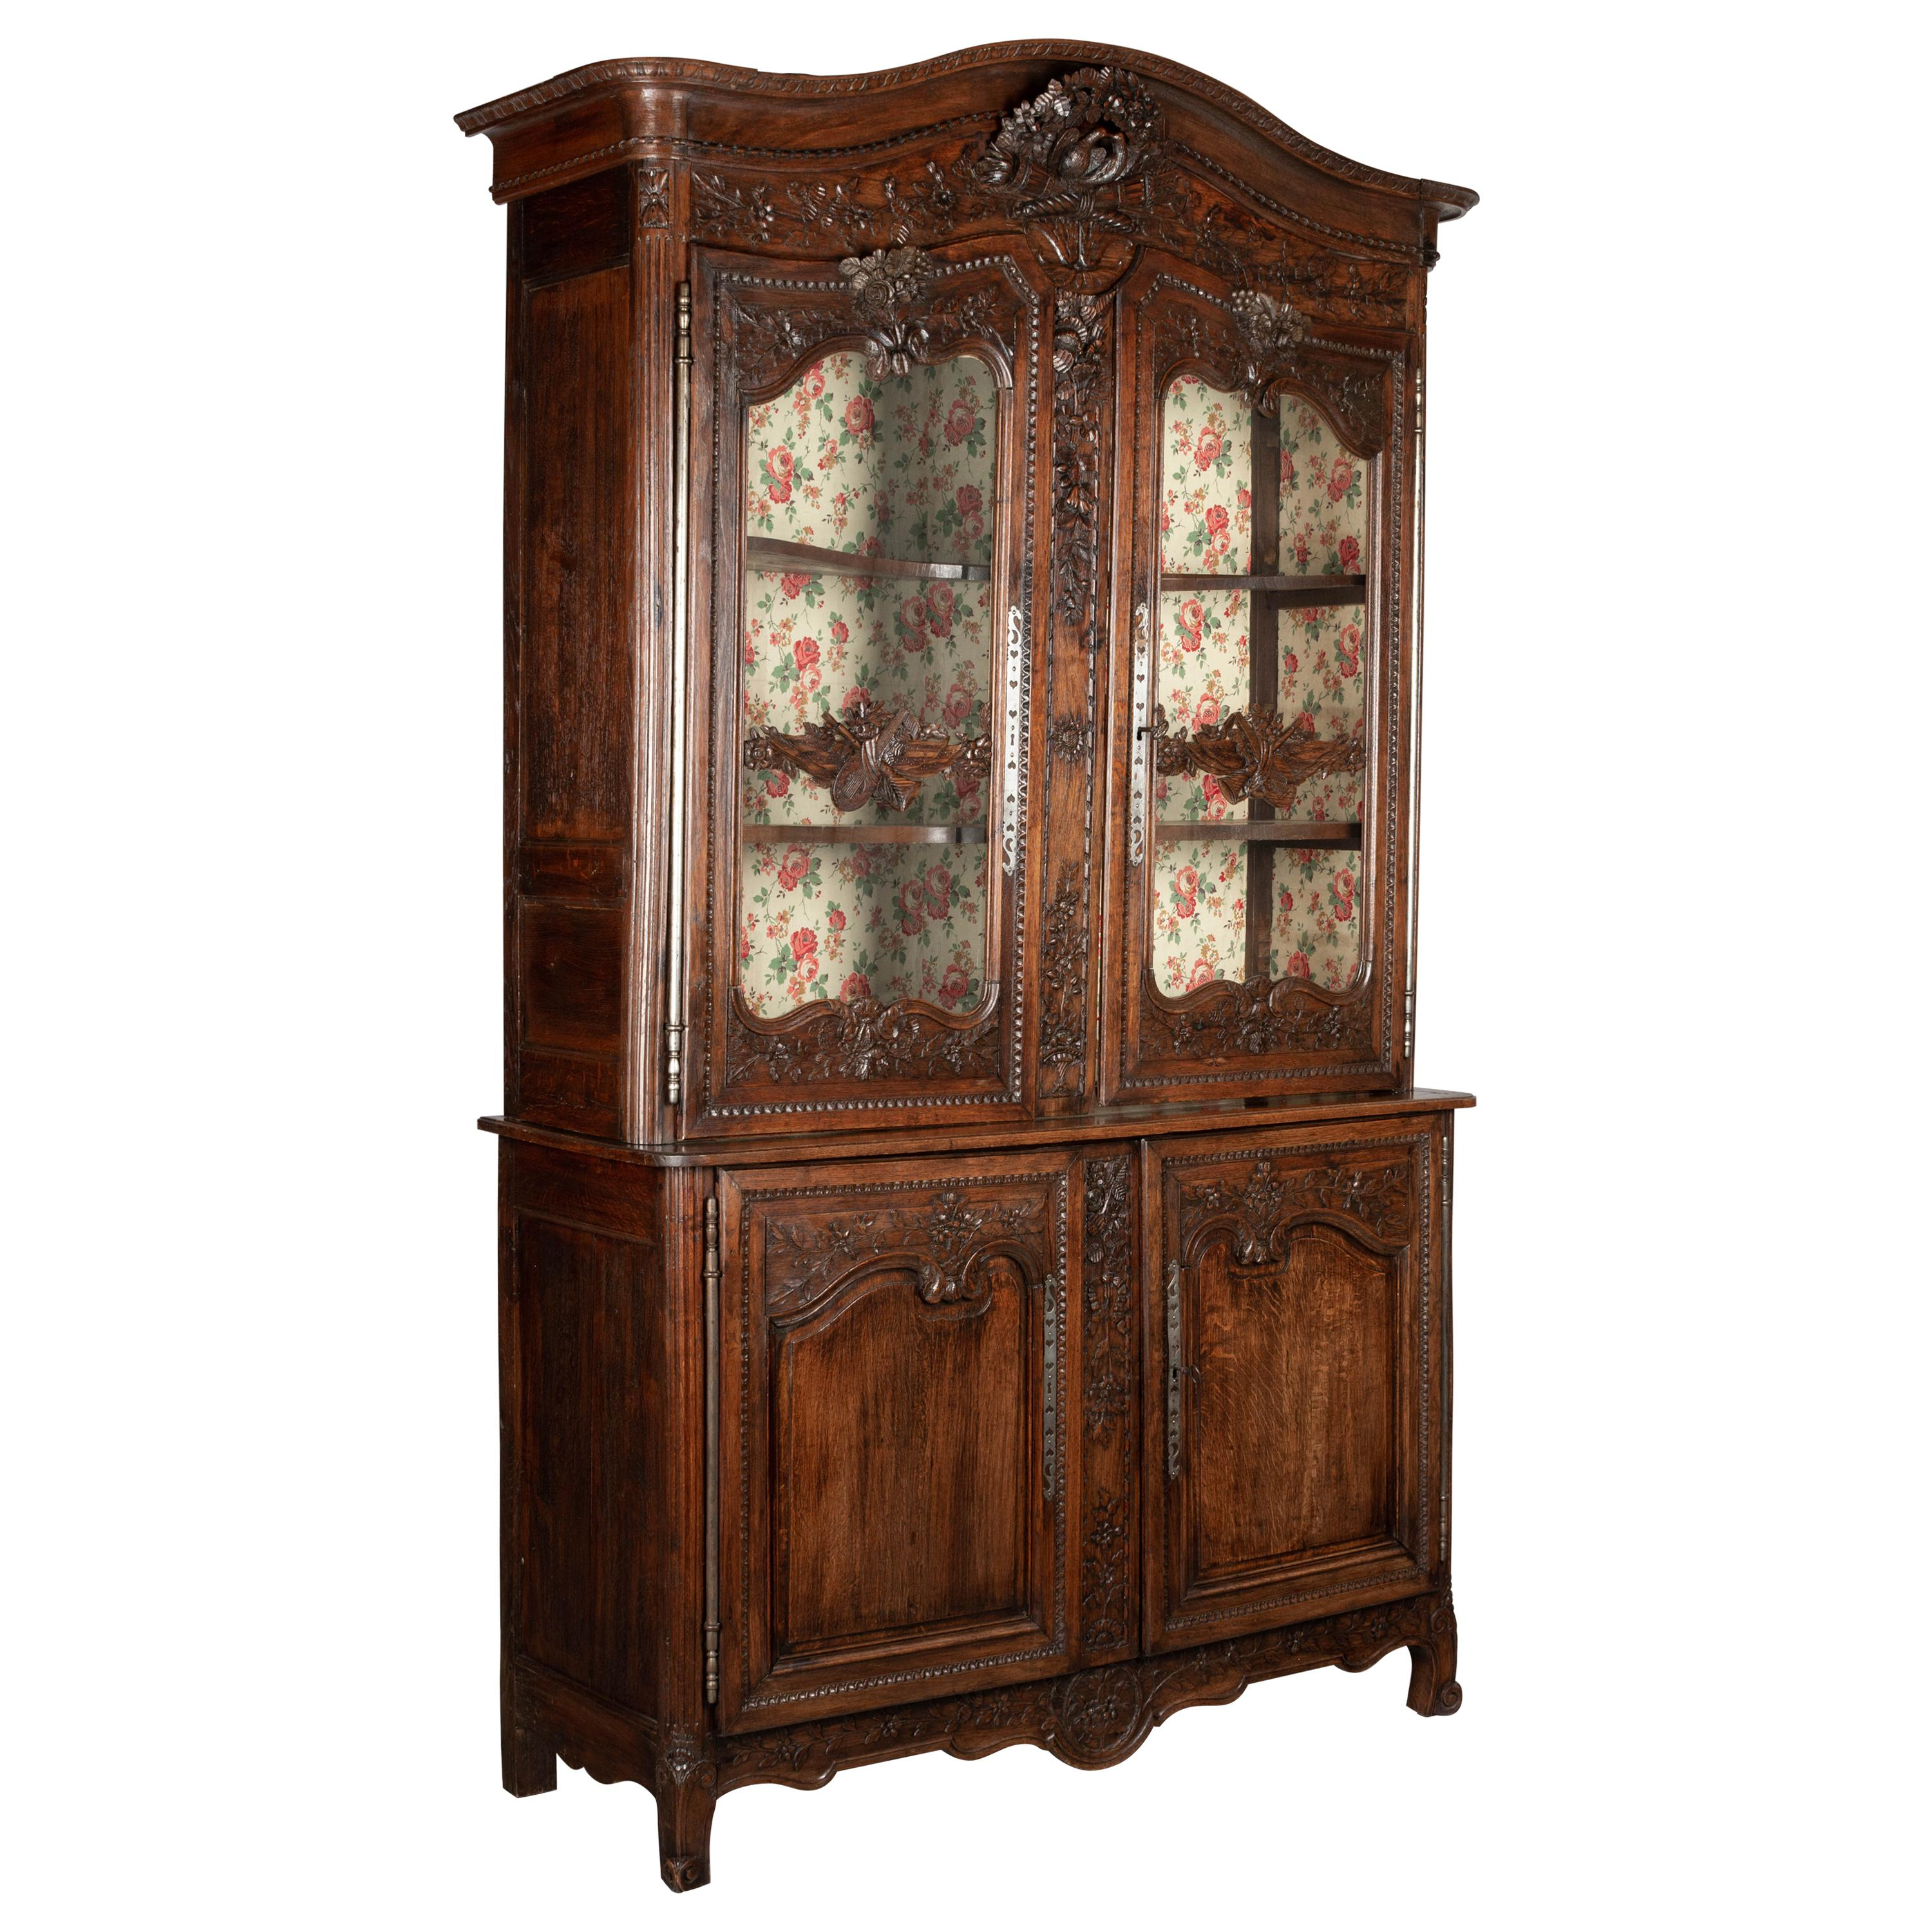 18th Century Country French Buffet À Deux Corps or Cupboard